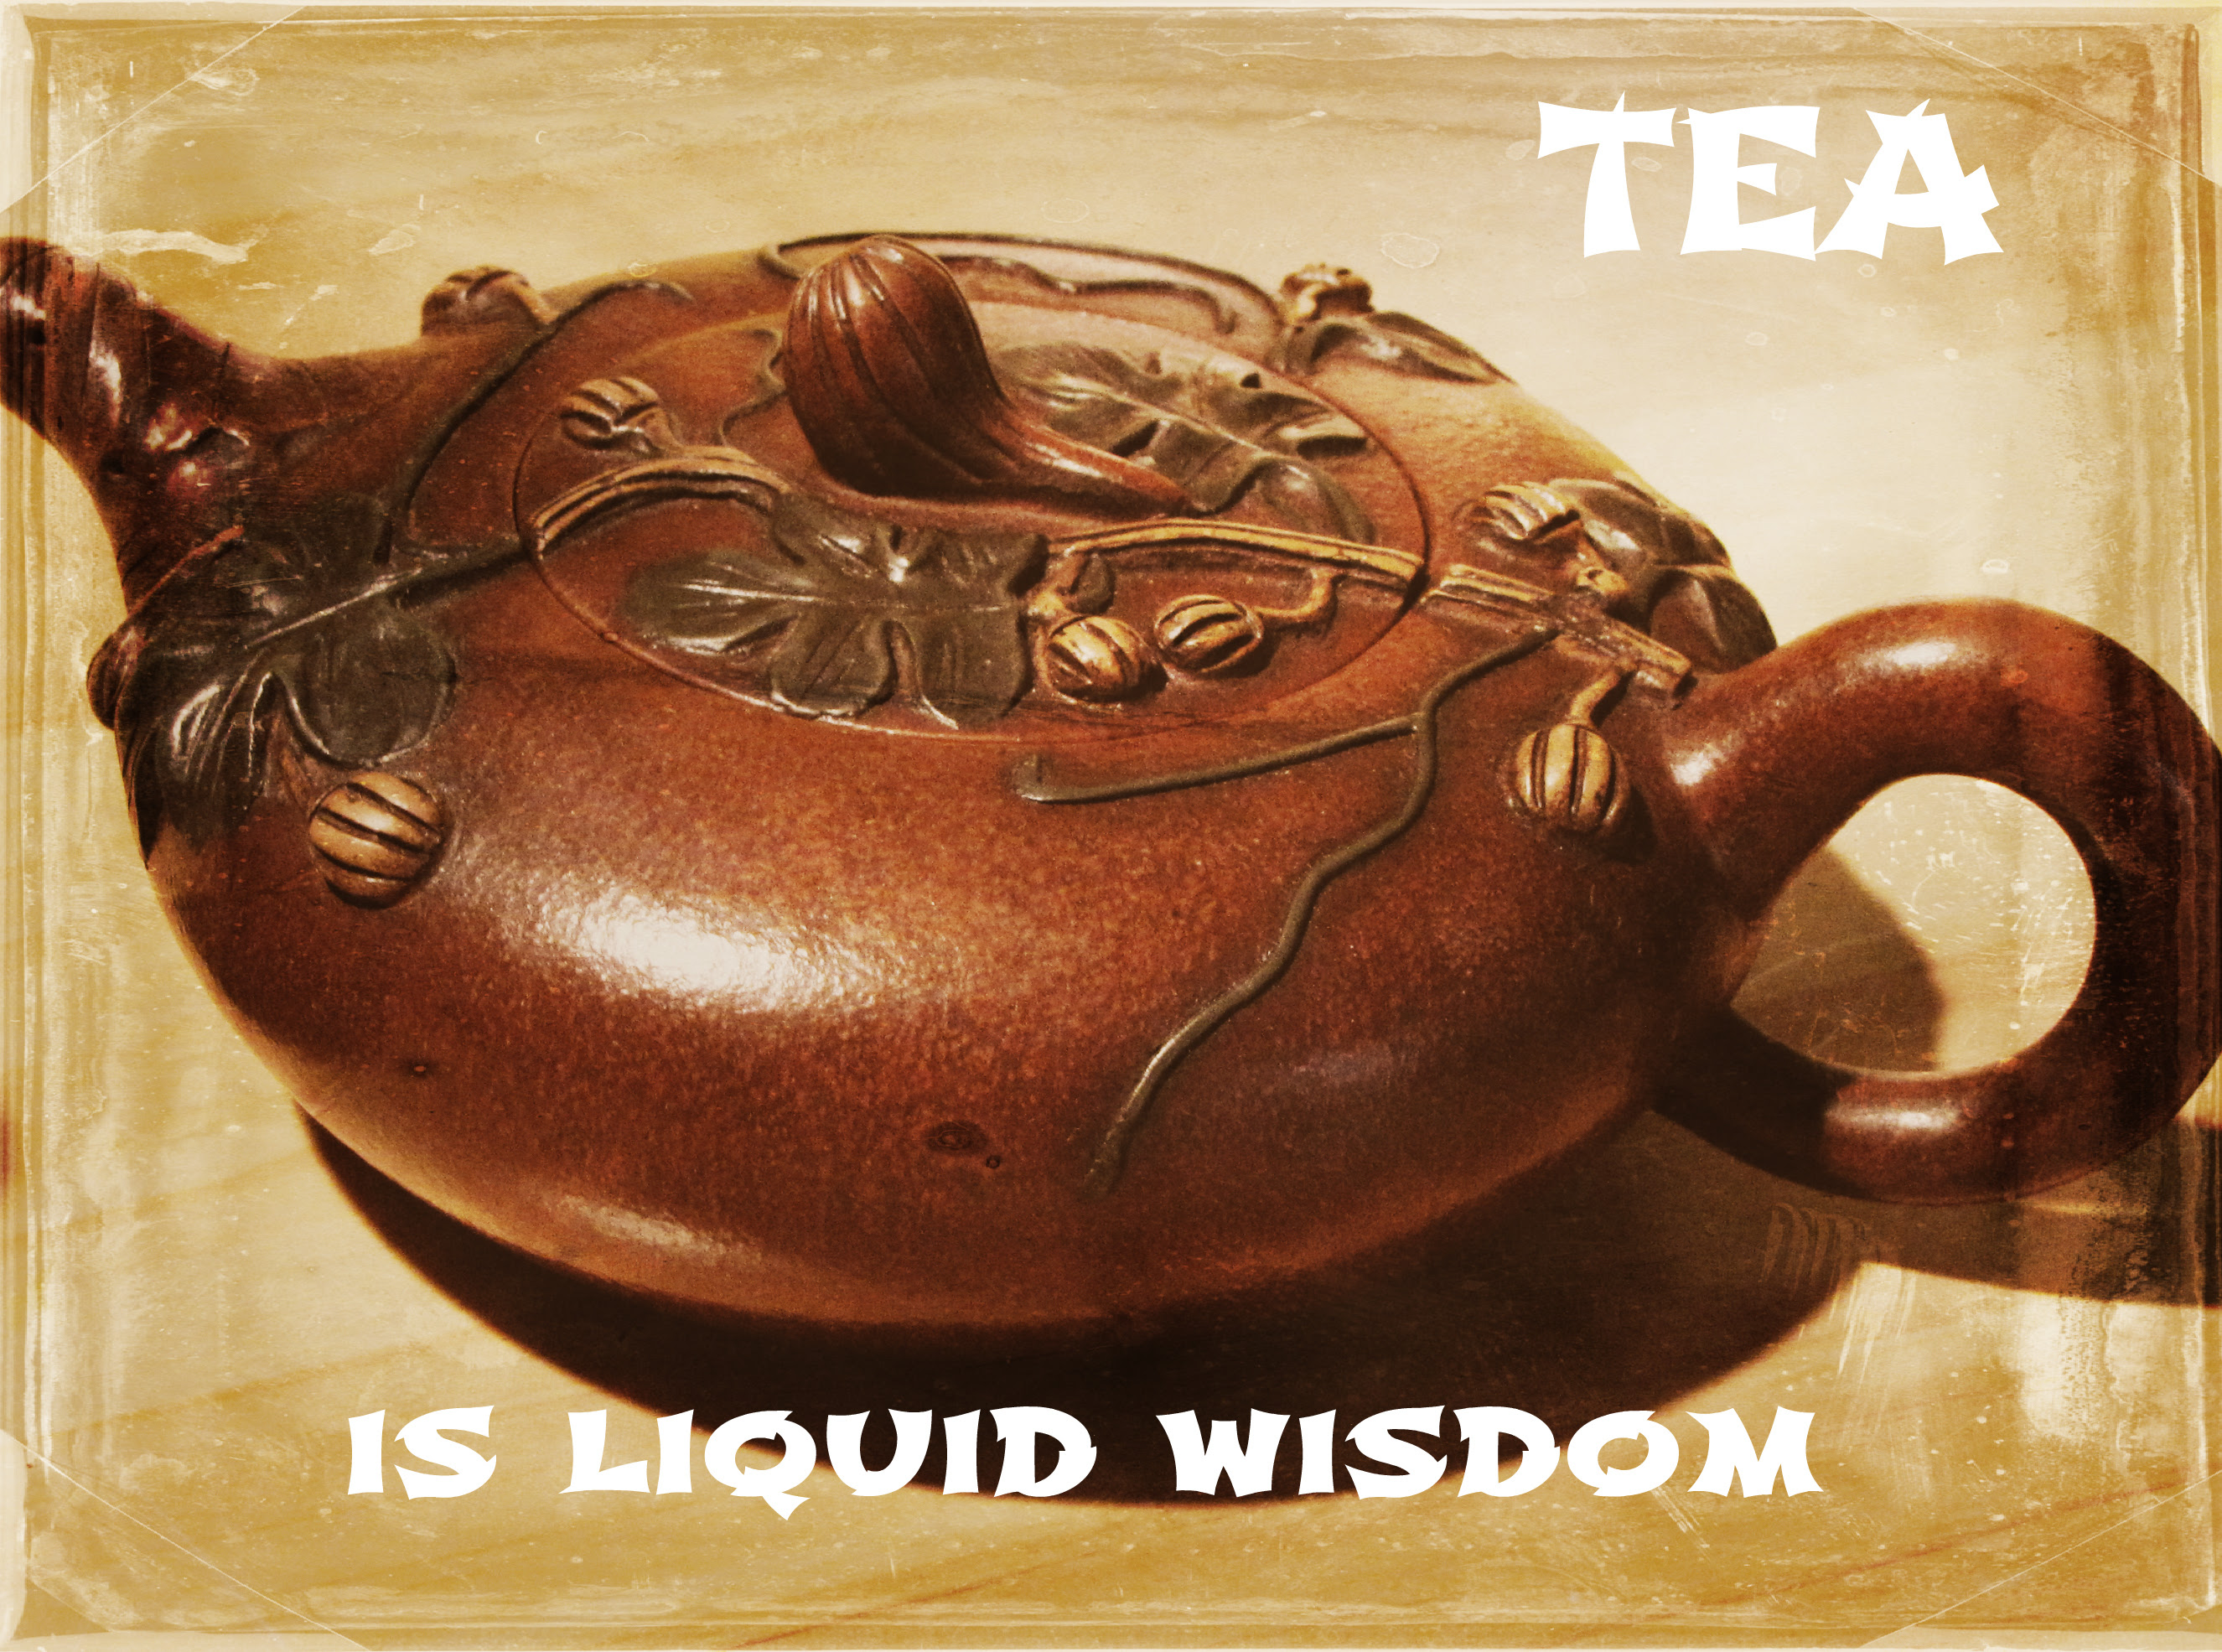 Tea is liquid wisdom